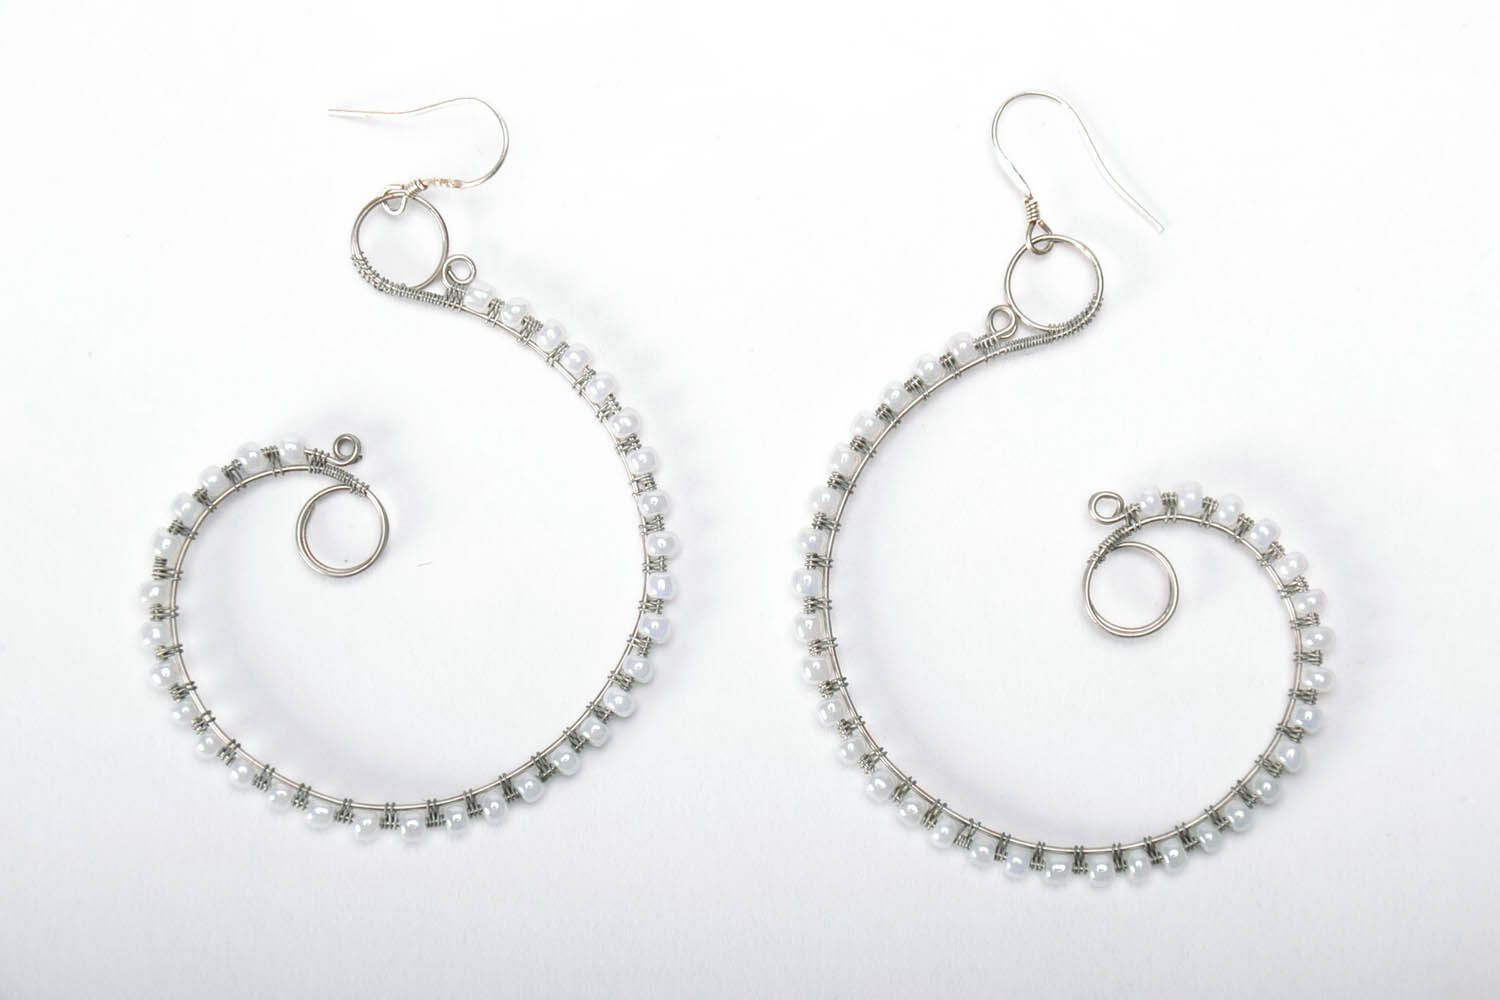 Earrings with natural stones photo 3